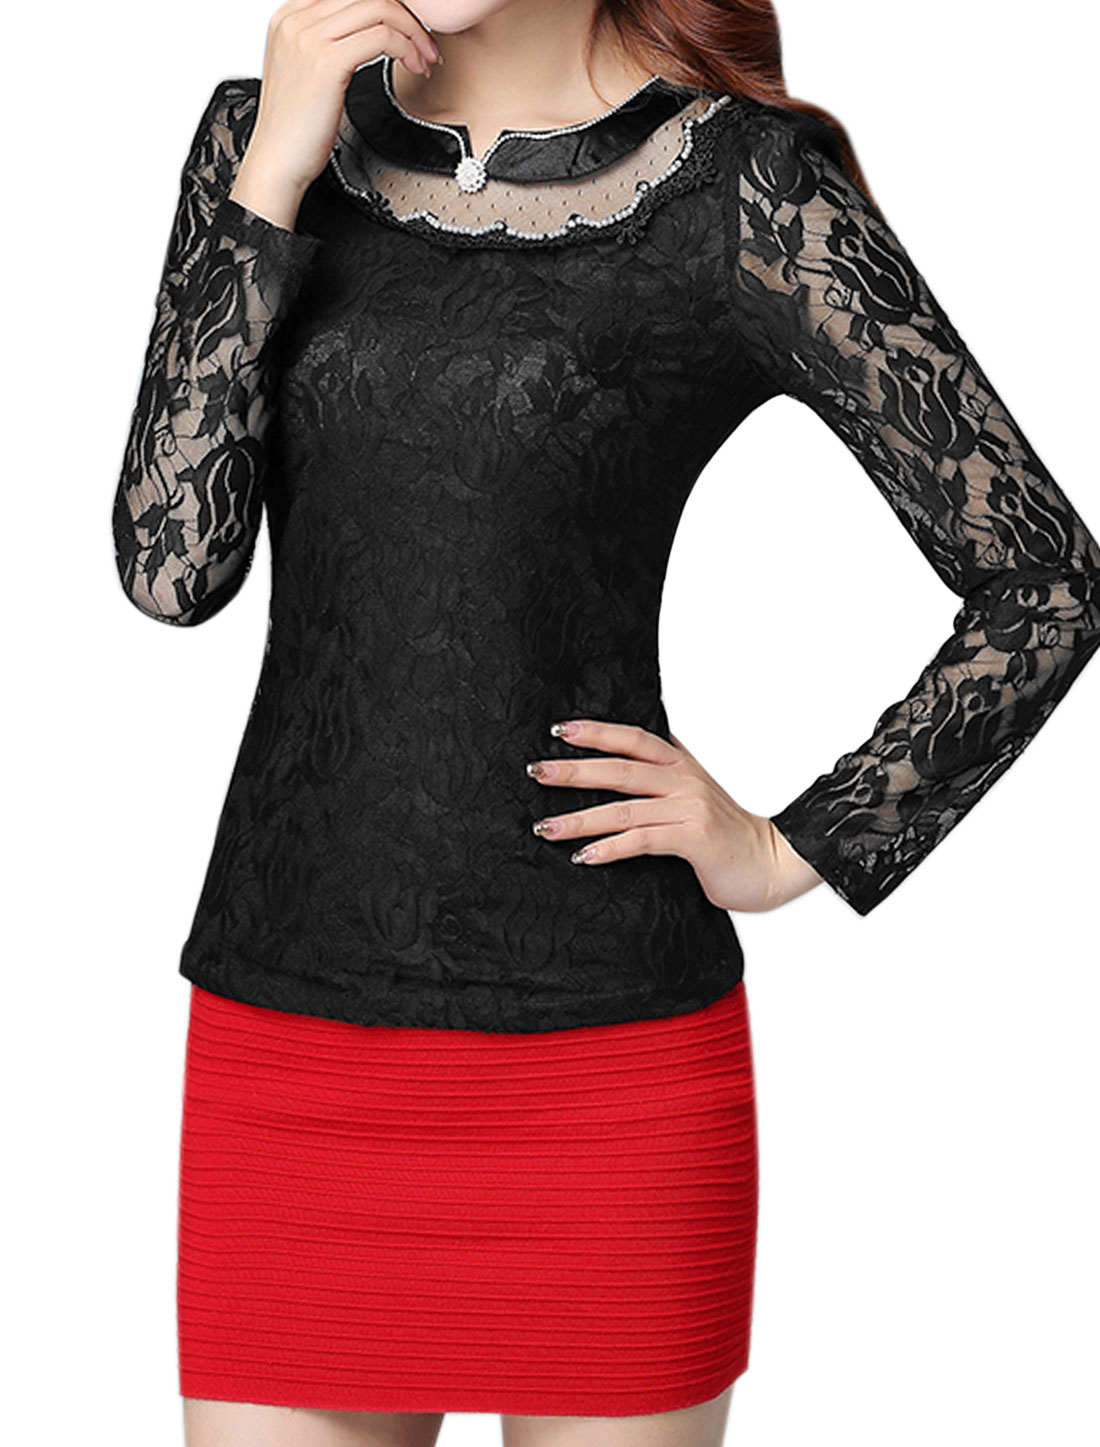 Women Beaded Rhinestone Slim Fit Floral Lace Top Black M